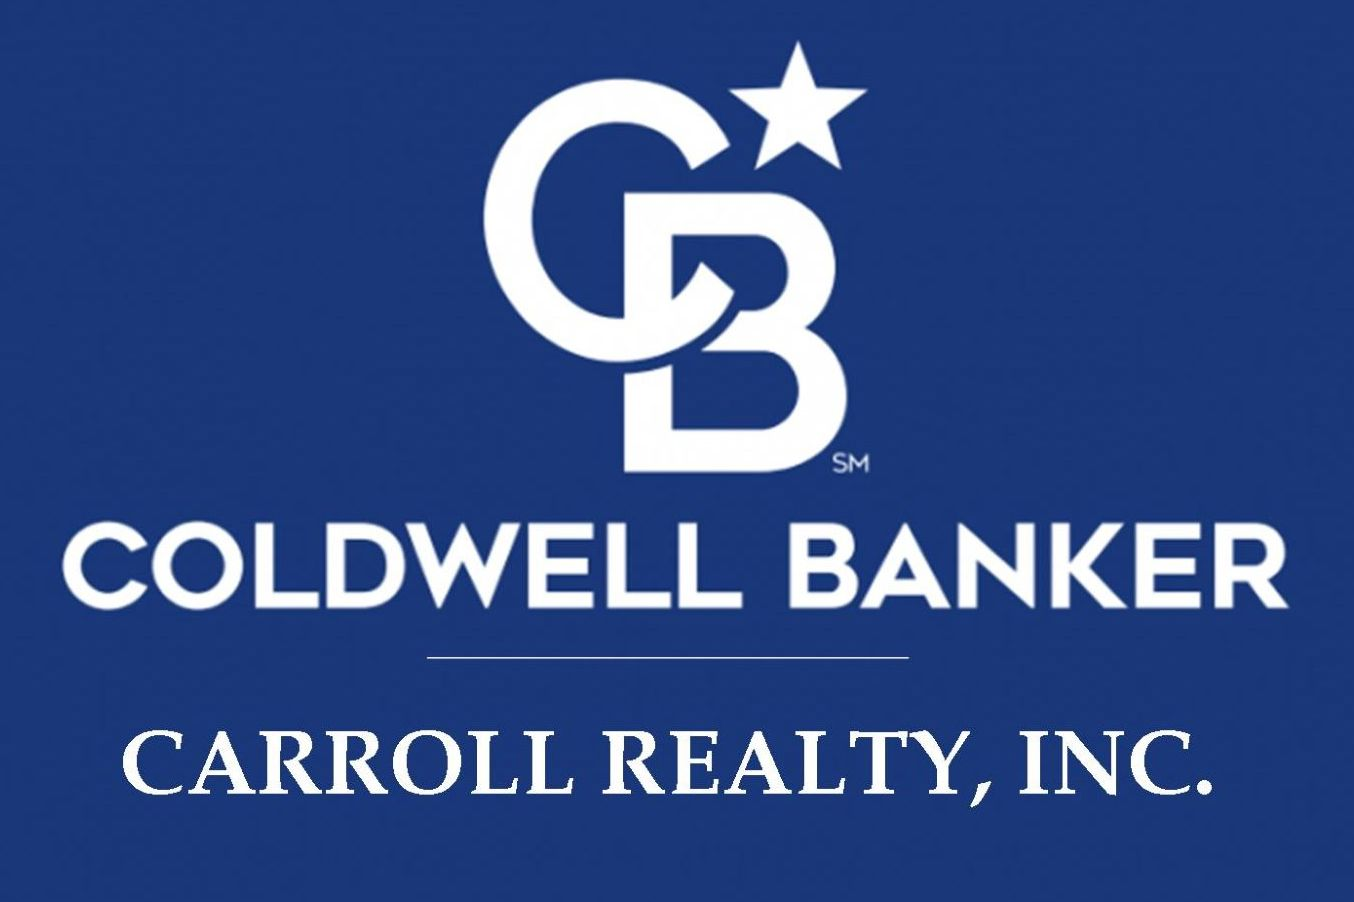 Coldwell Banker/Carroll Realty